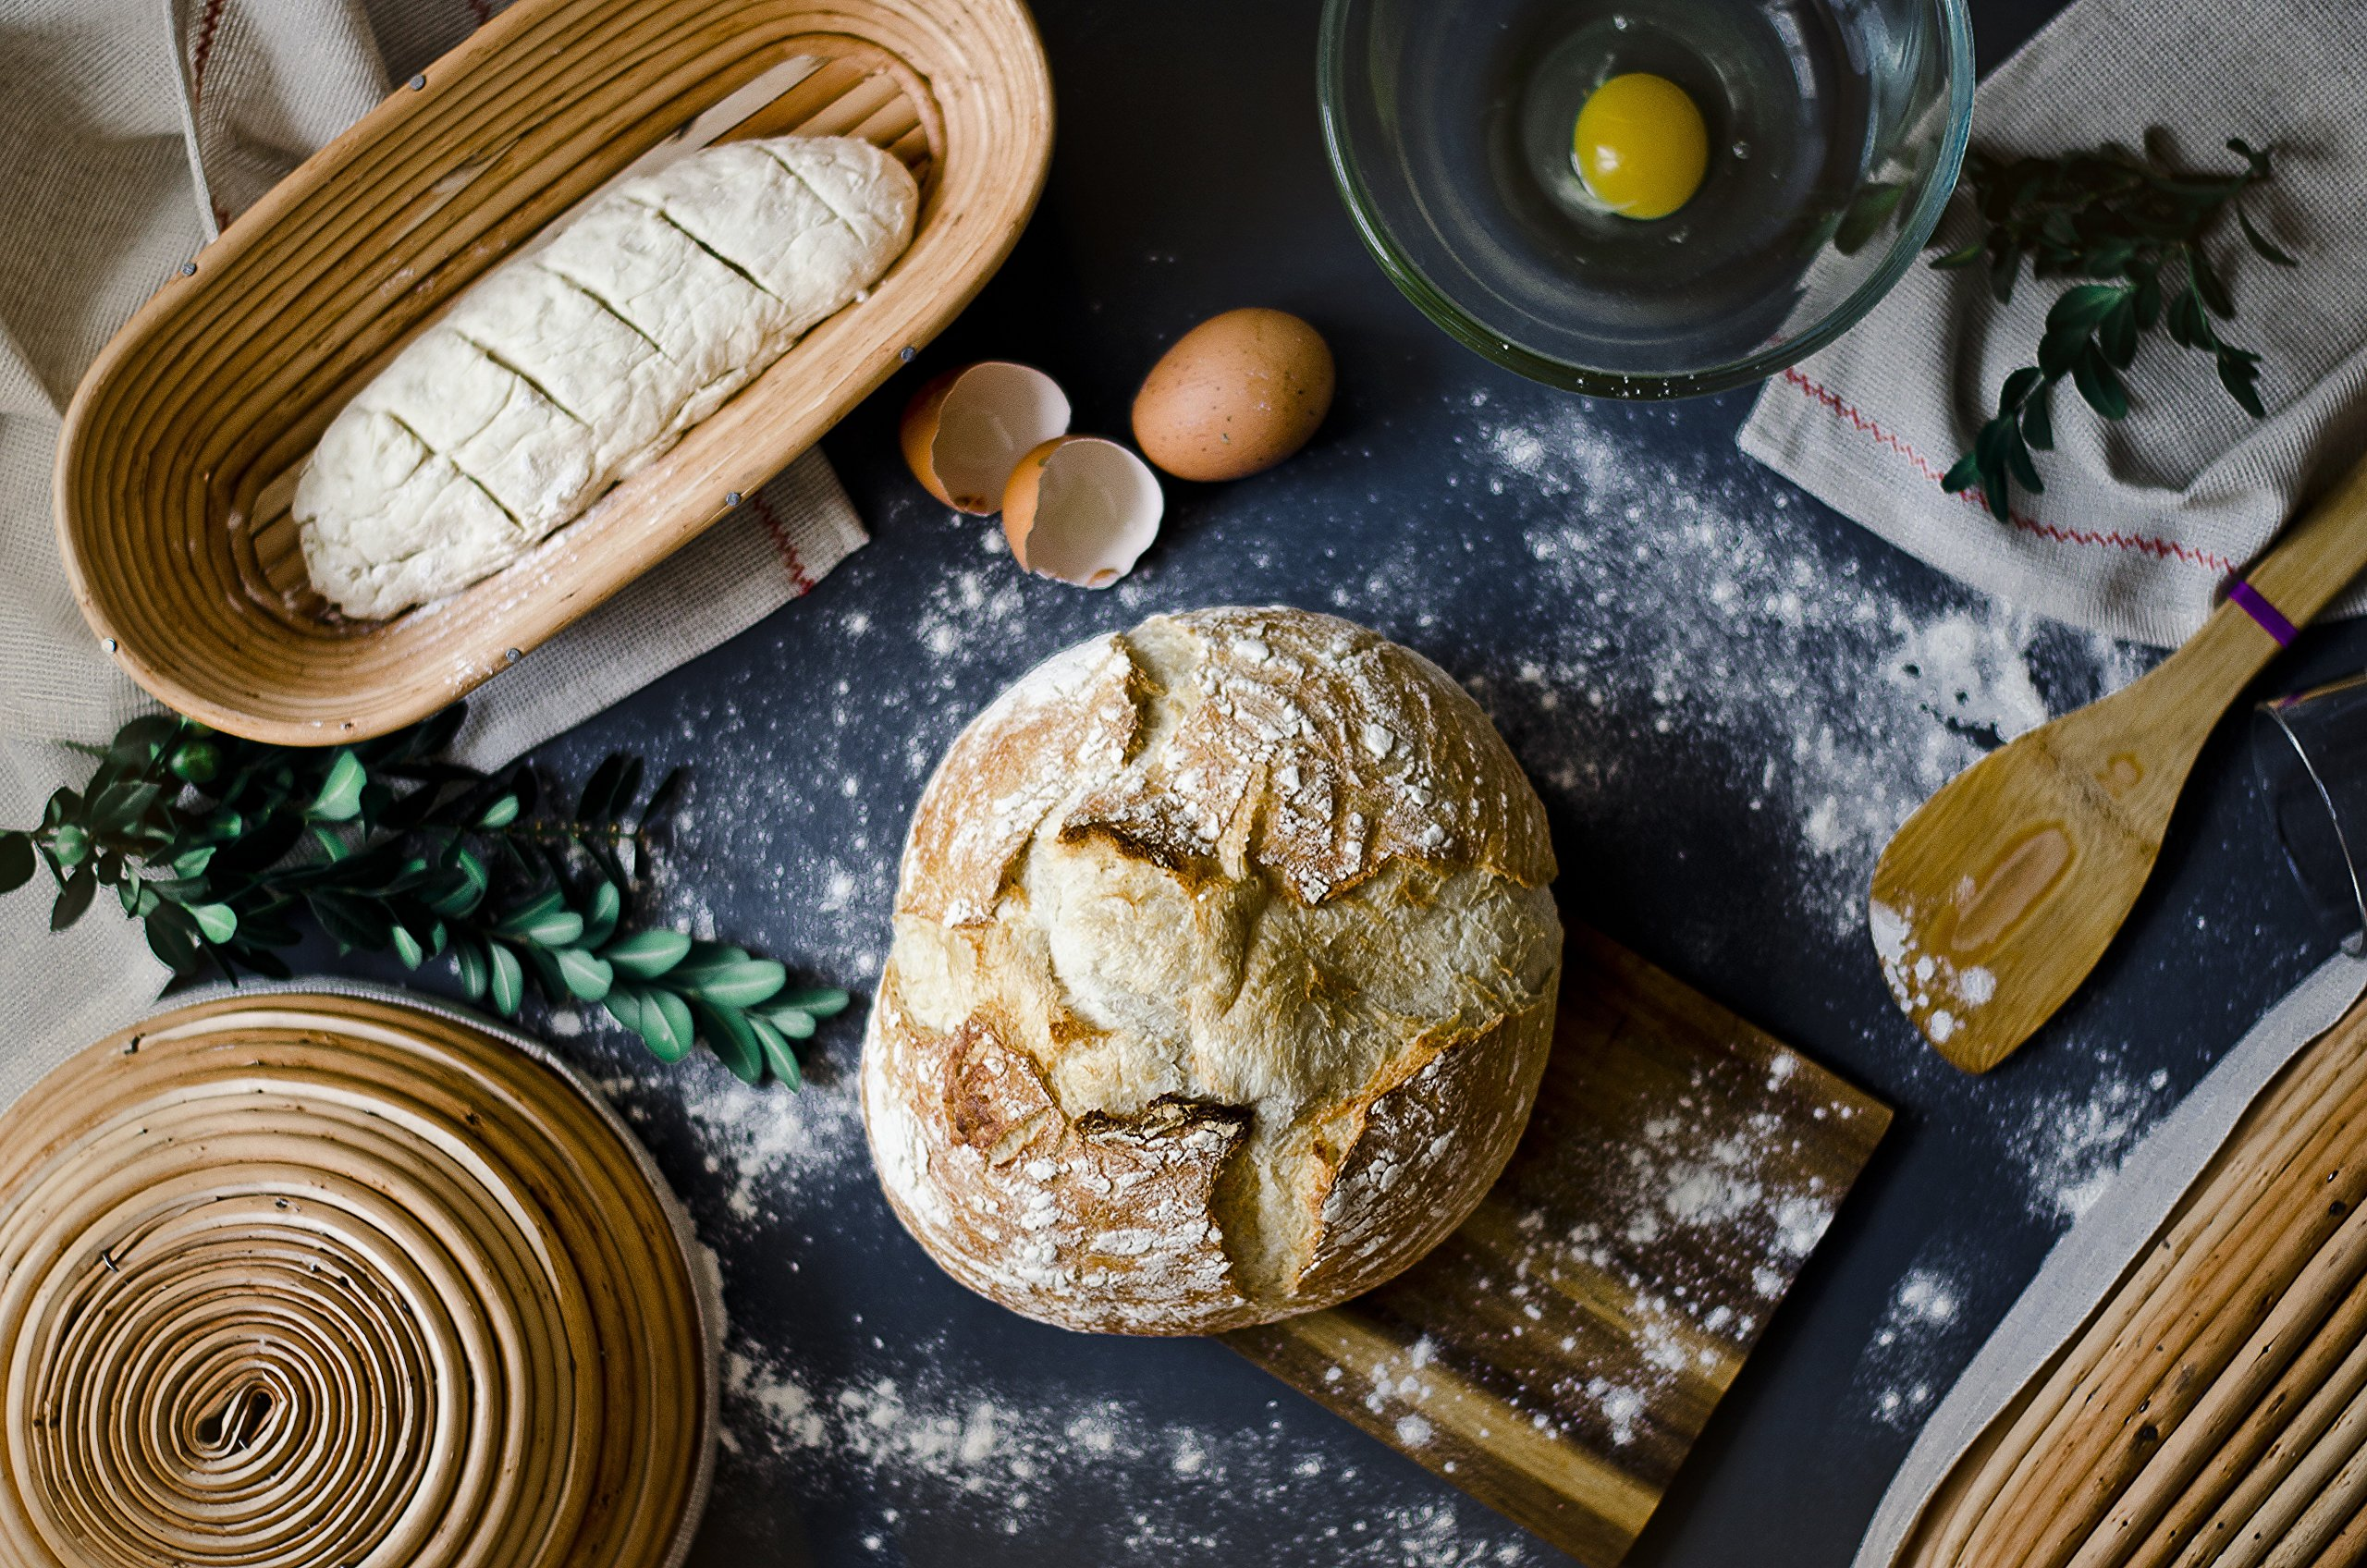 Bread Banneton 1kg (Rounde 8.6 x 3.5 inches) Willow Proofing Basket Best Bakery Themed Gifts for Women with Linen Liner Covers by My little bakery (Image #6)